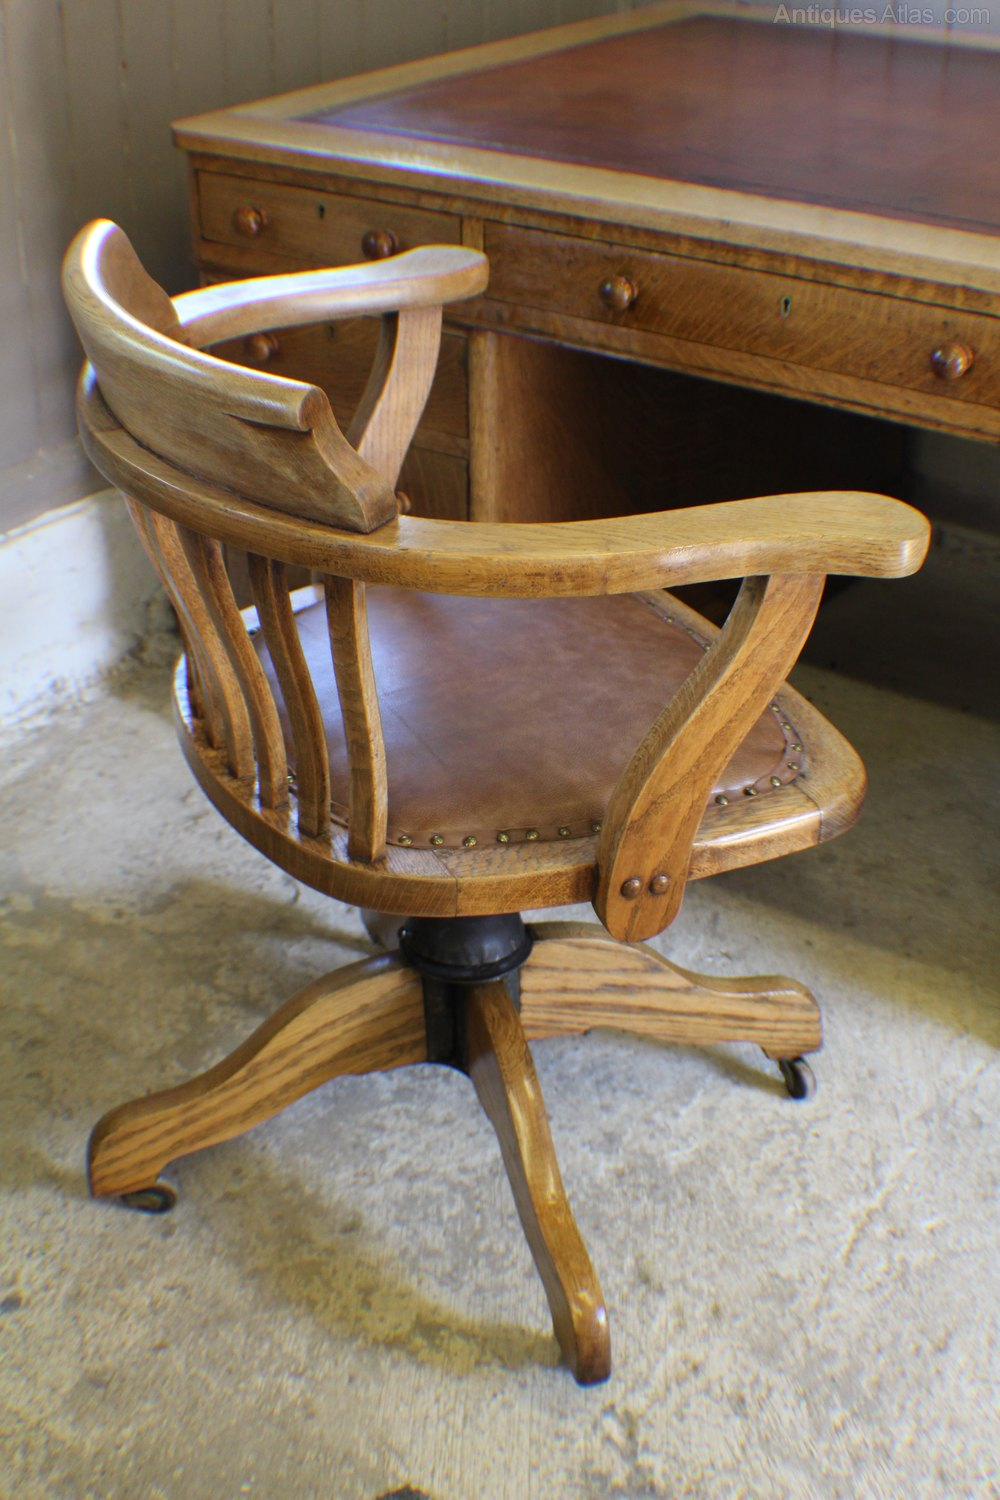 Vintage Swivel Chair Vintage Oak 1930s Adjustable Desk Office Chair